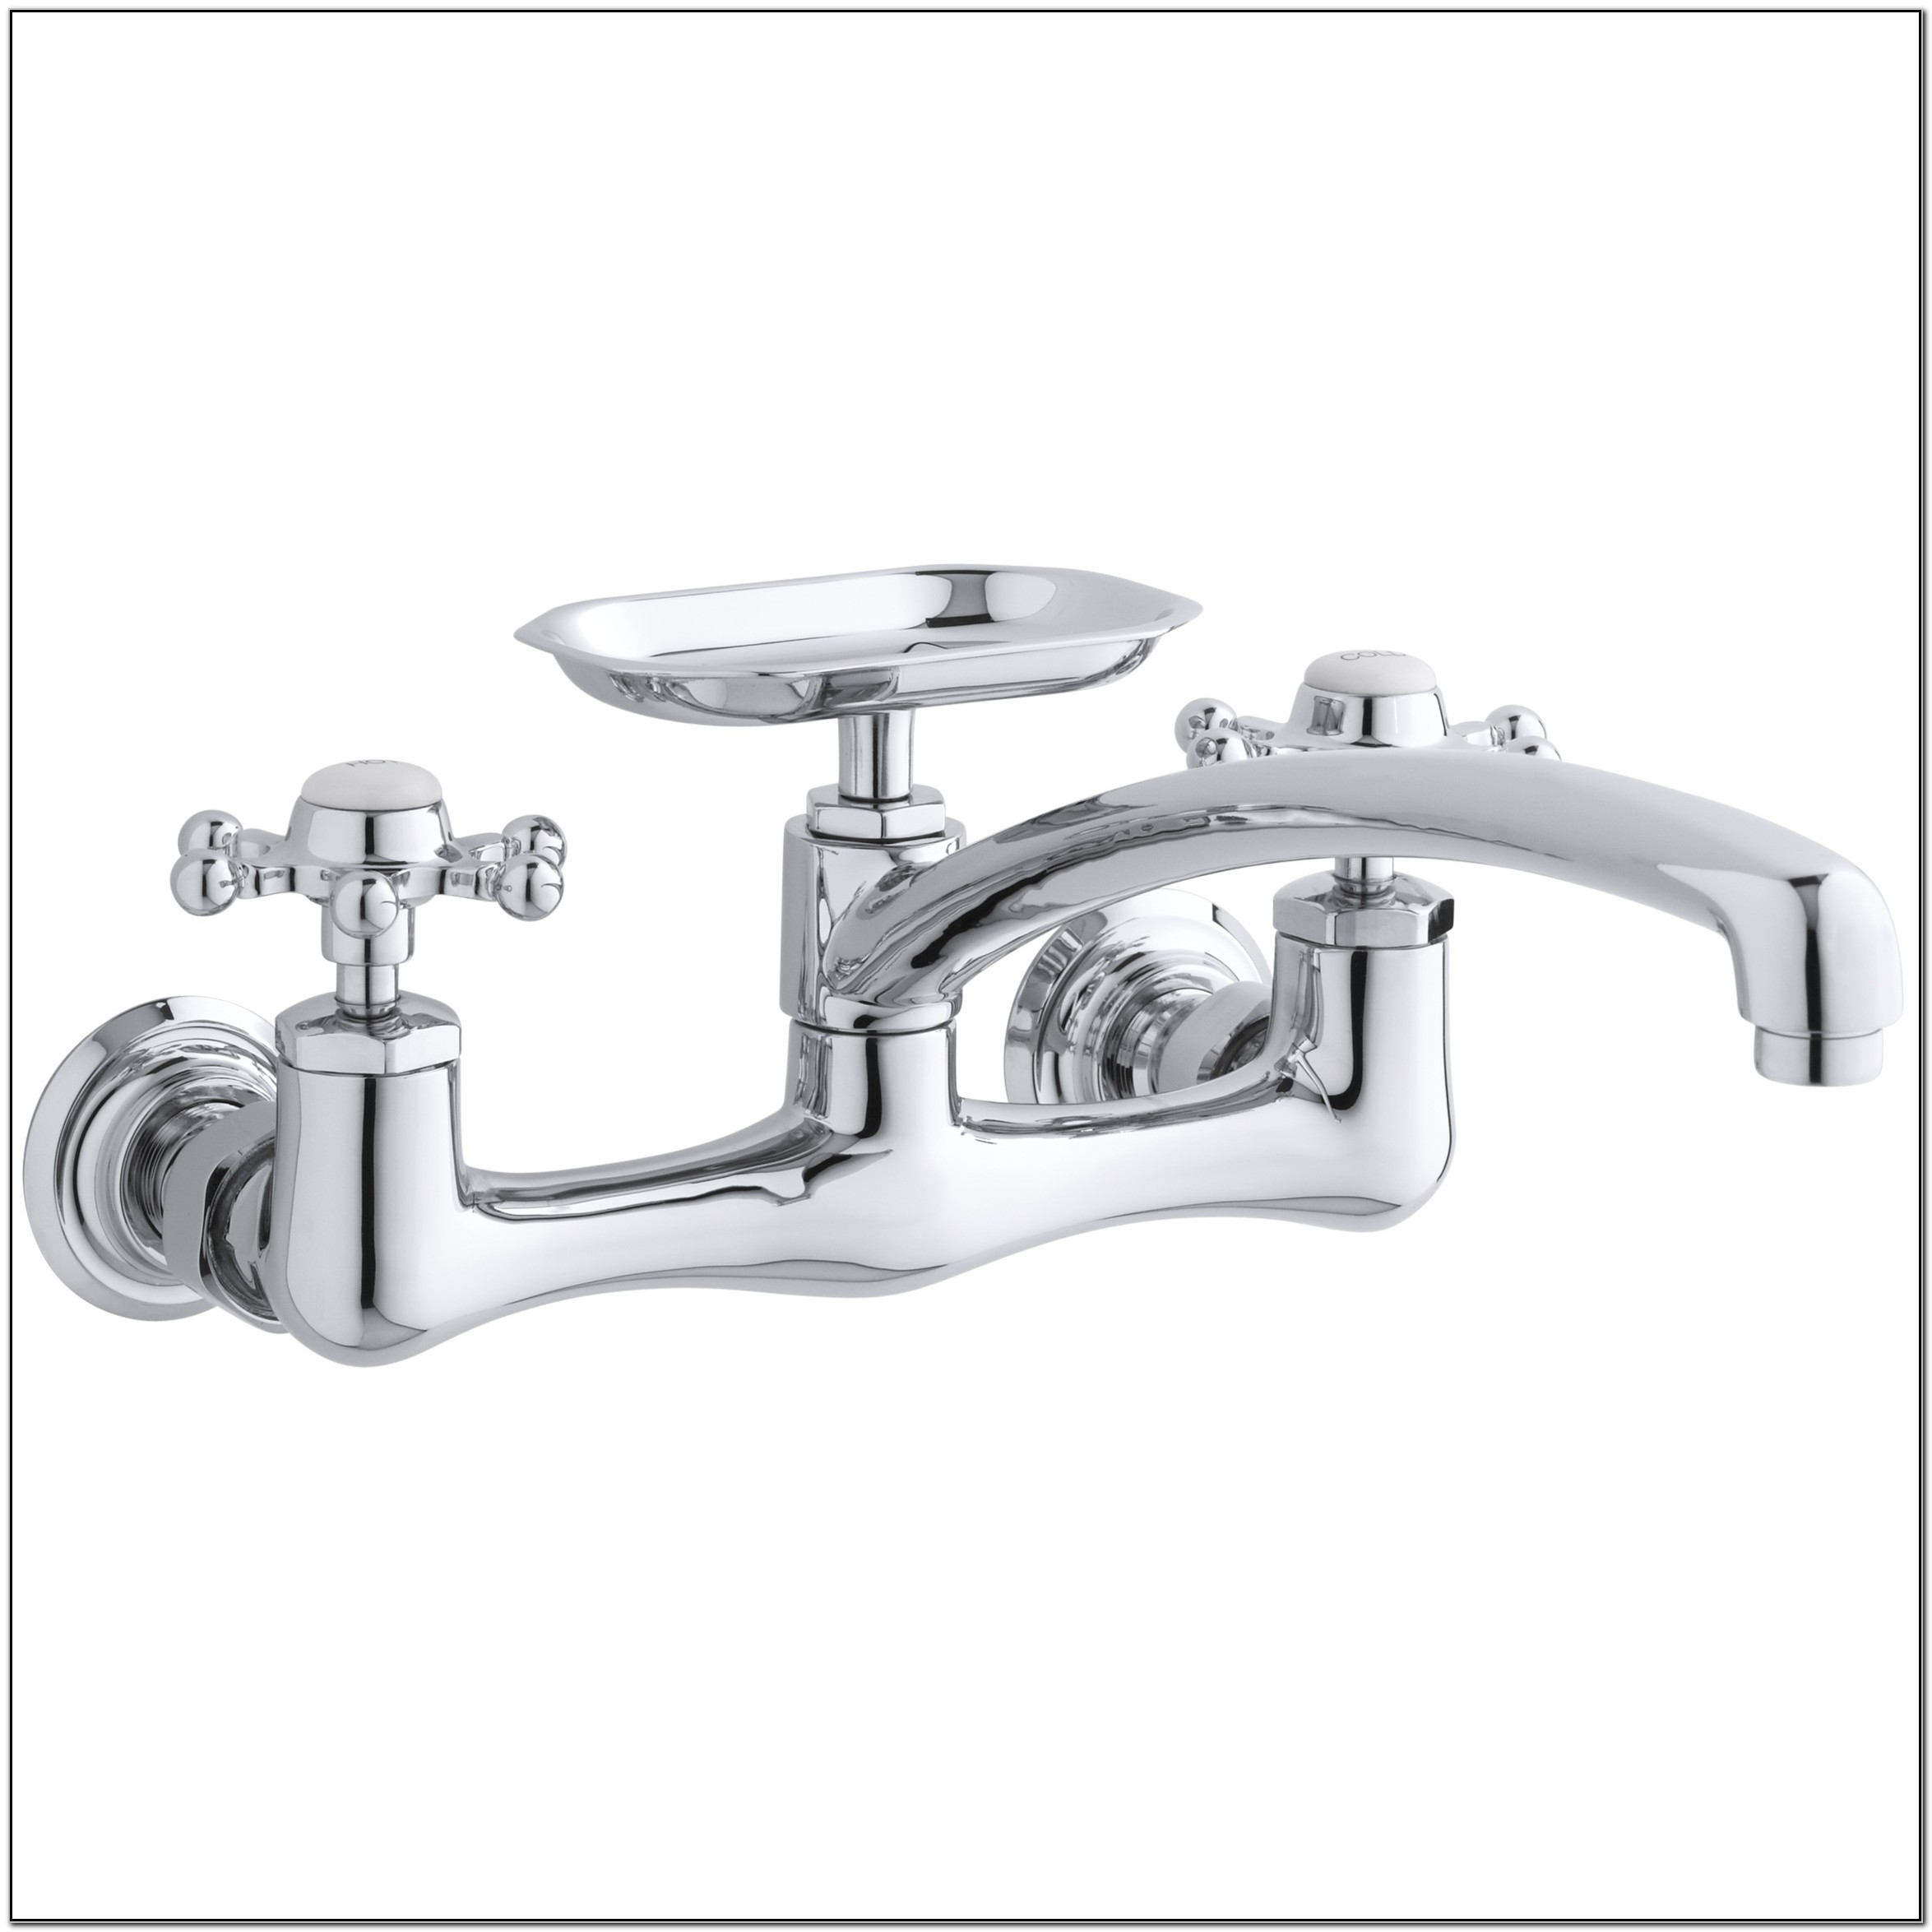 Antique Wall Mount Kitchen Sink Faucet